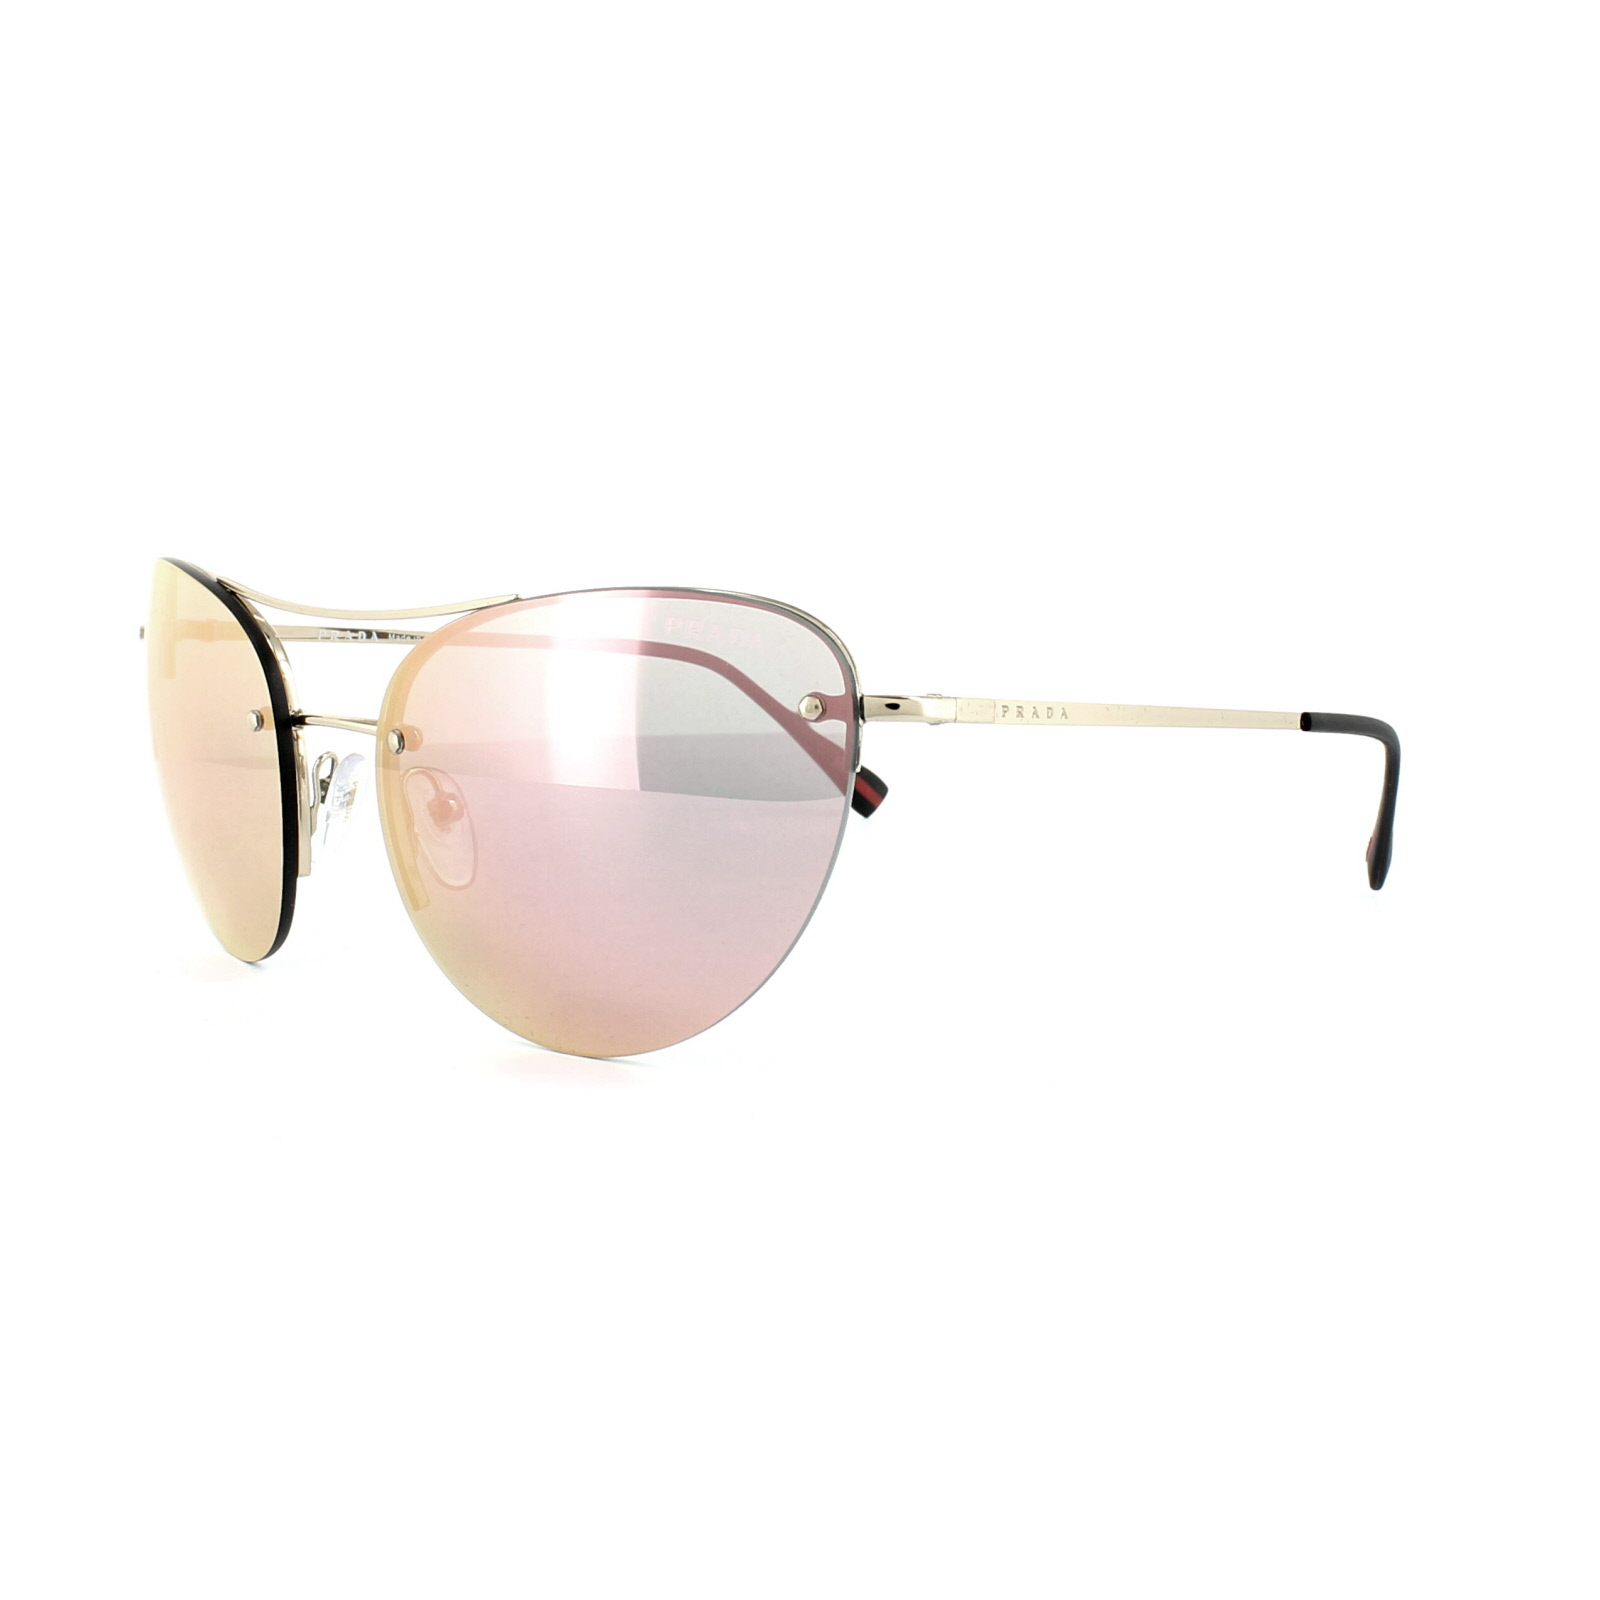 722660dd2f Sentinel Prada Sport Sunglasses 51RS ZVN5L2 Pale Gold Rose Gold Mirror